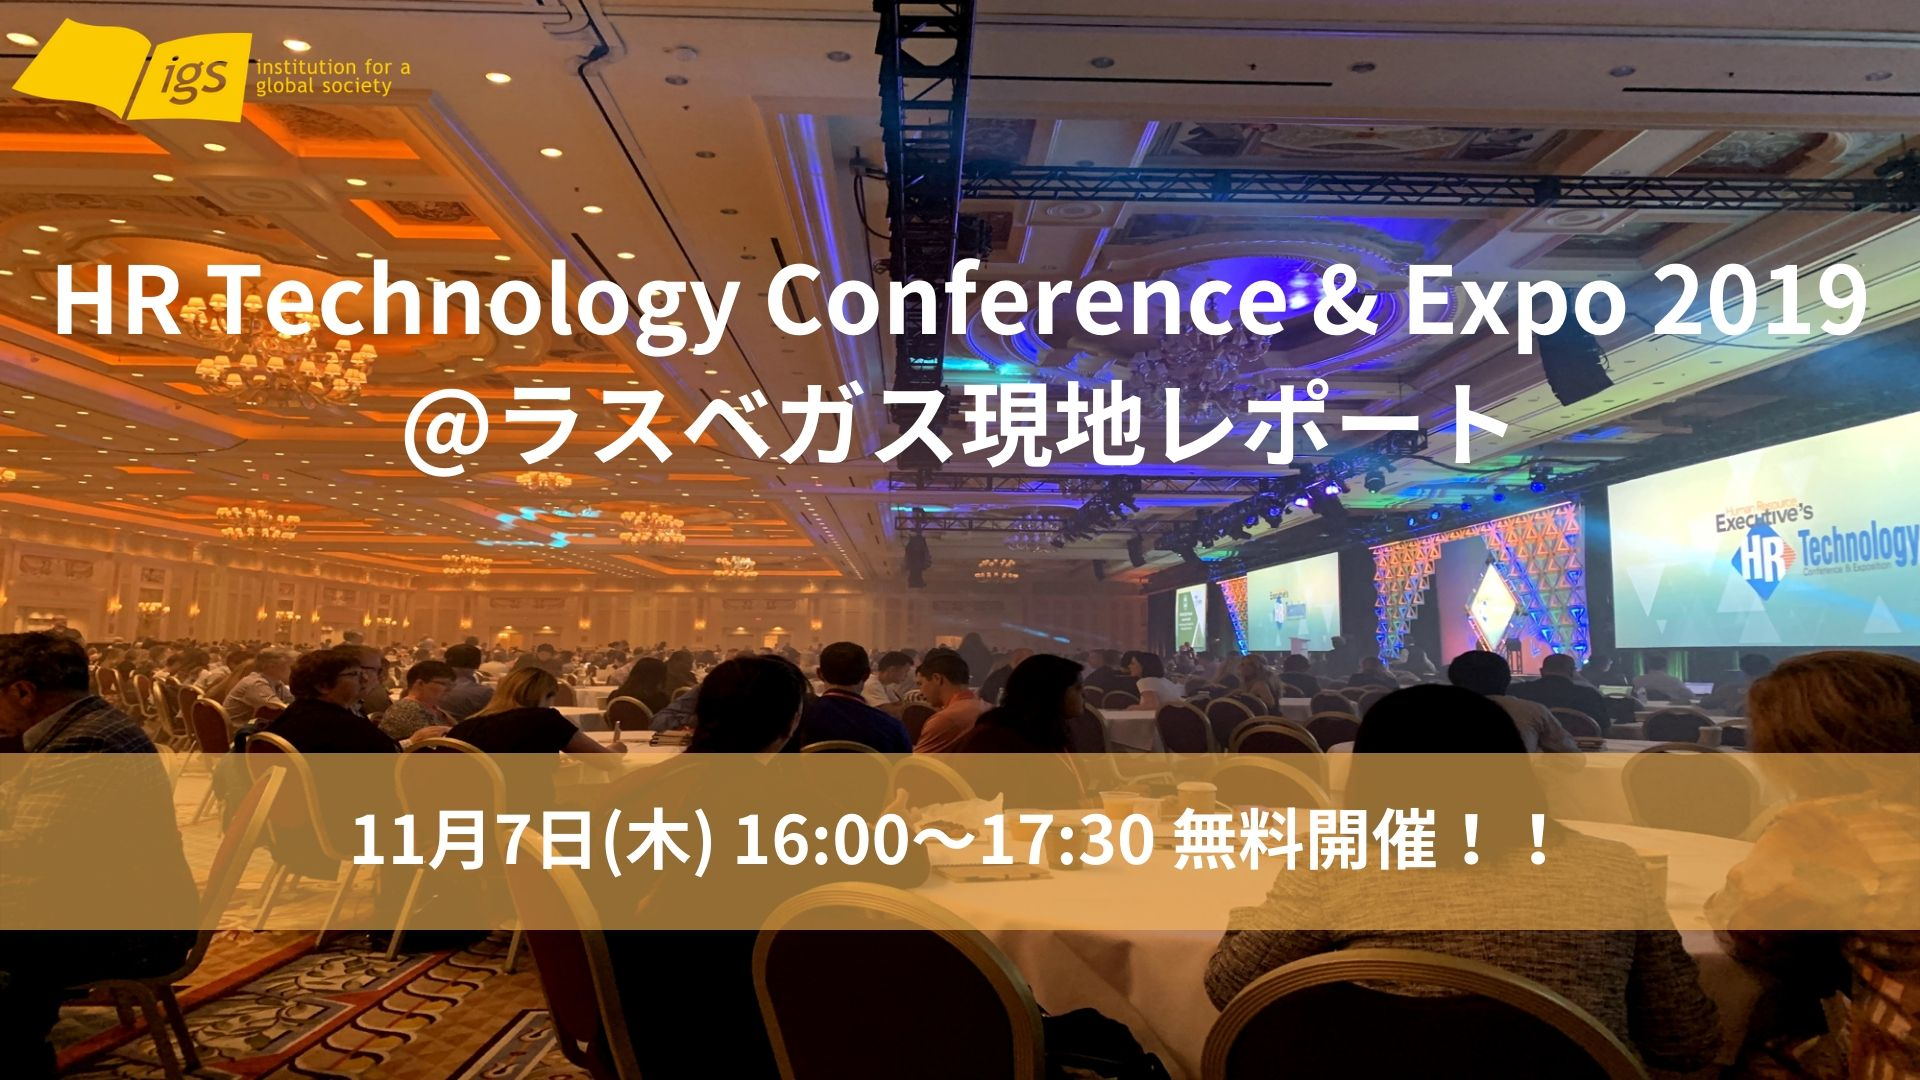 HR Technology Conference & Expo 2019 @ラスベガス現地レポート 11月7日(木) 16_00〜17_30 無料開催!!